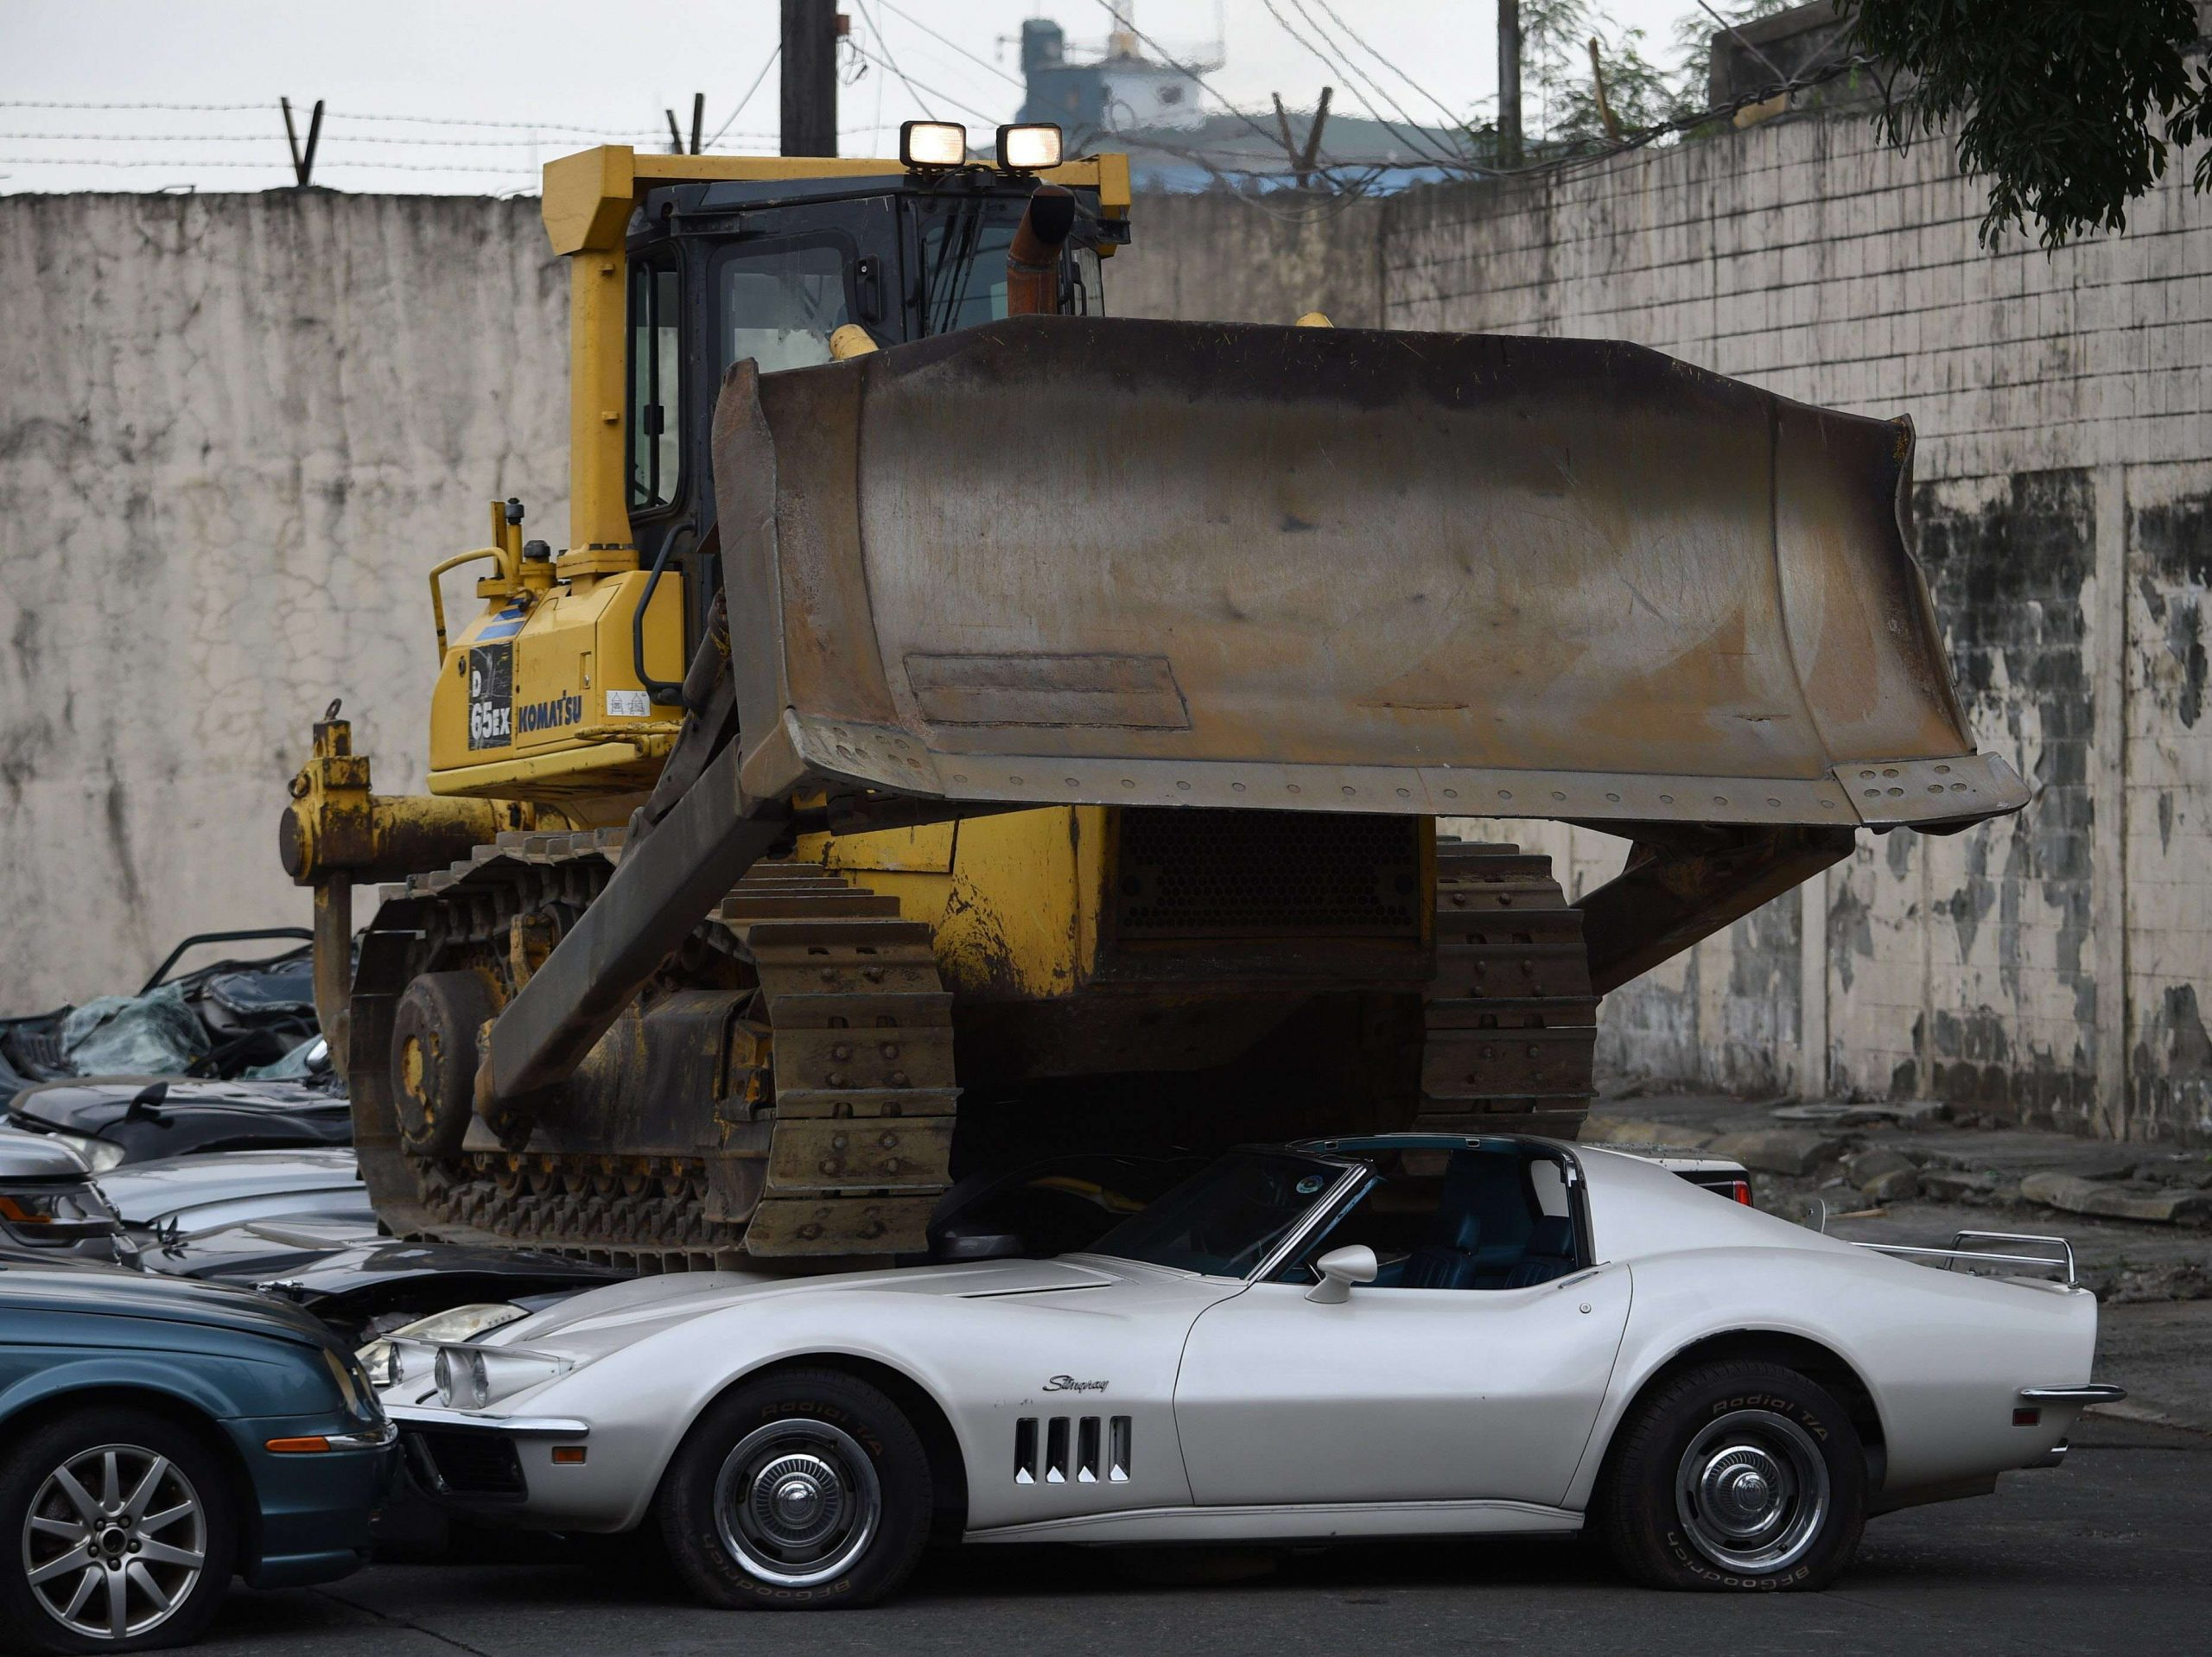 Philippines President bulldozes luxury vehicles to make anti-smuggling statement.